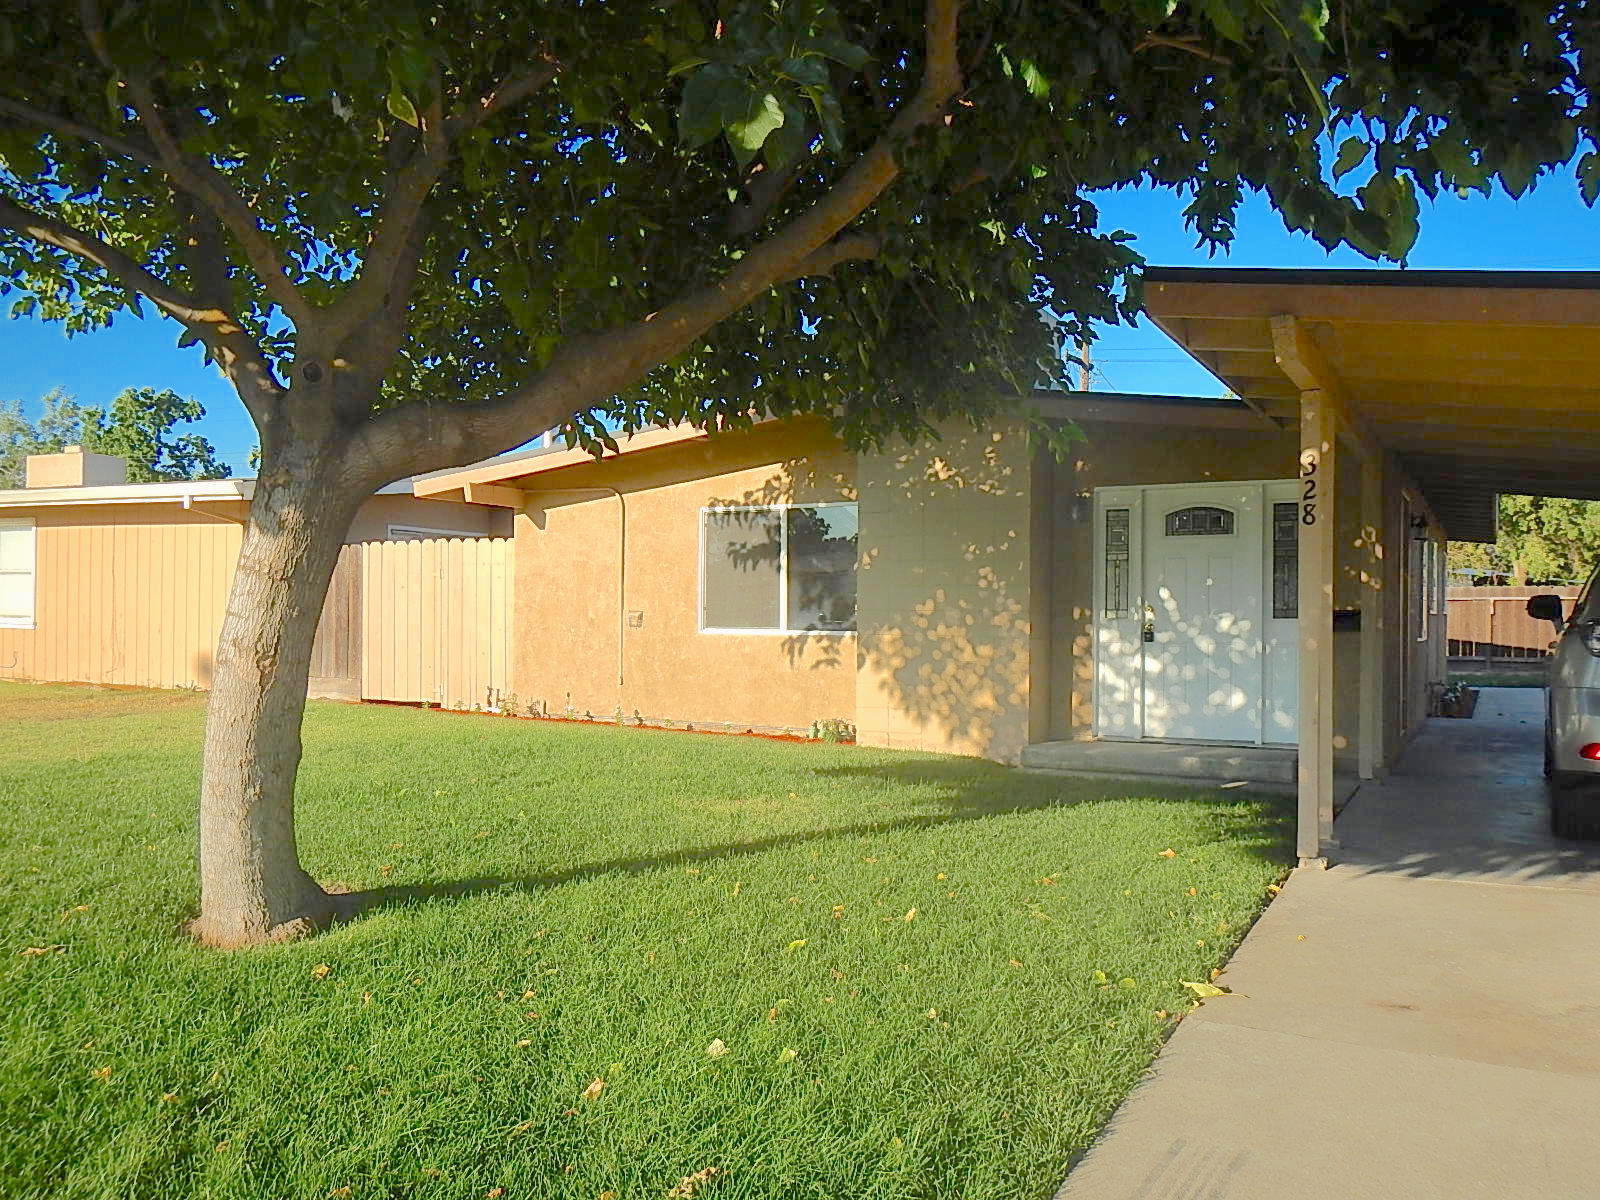 Photo of 328 S Powers Ave, Manteca, CA, 95336